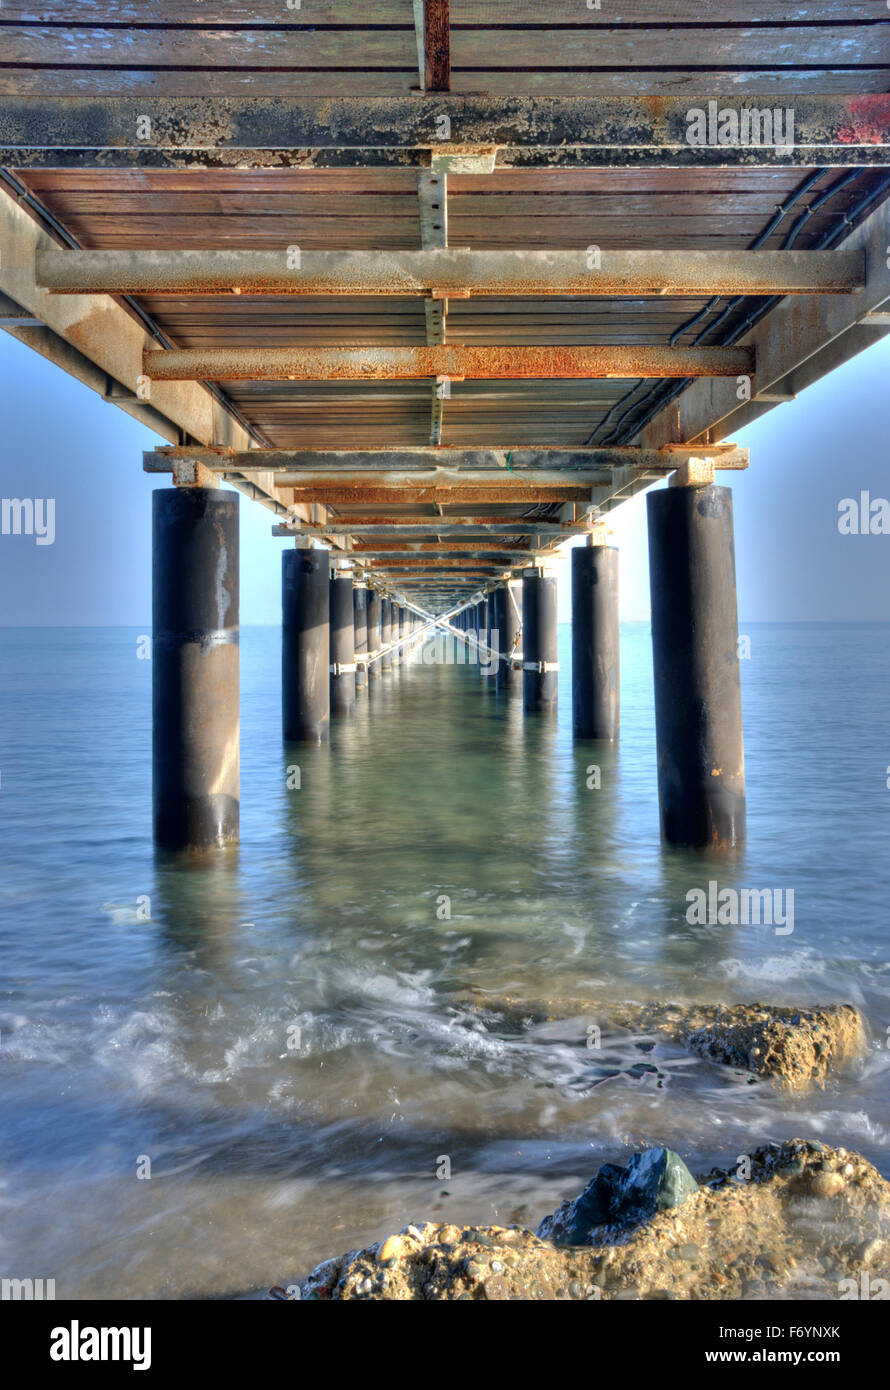 Rusty metallic  pier from sea level in vertical composition creating a diagonal directive tunnel. - Stock Image